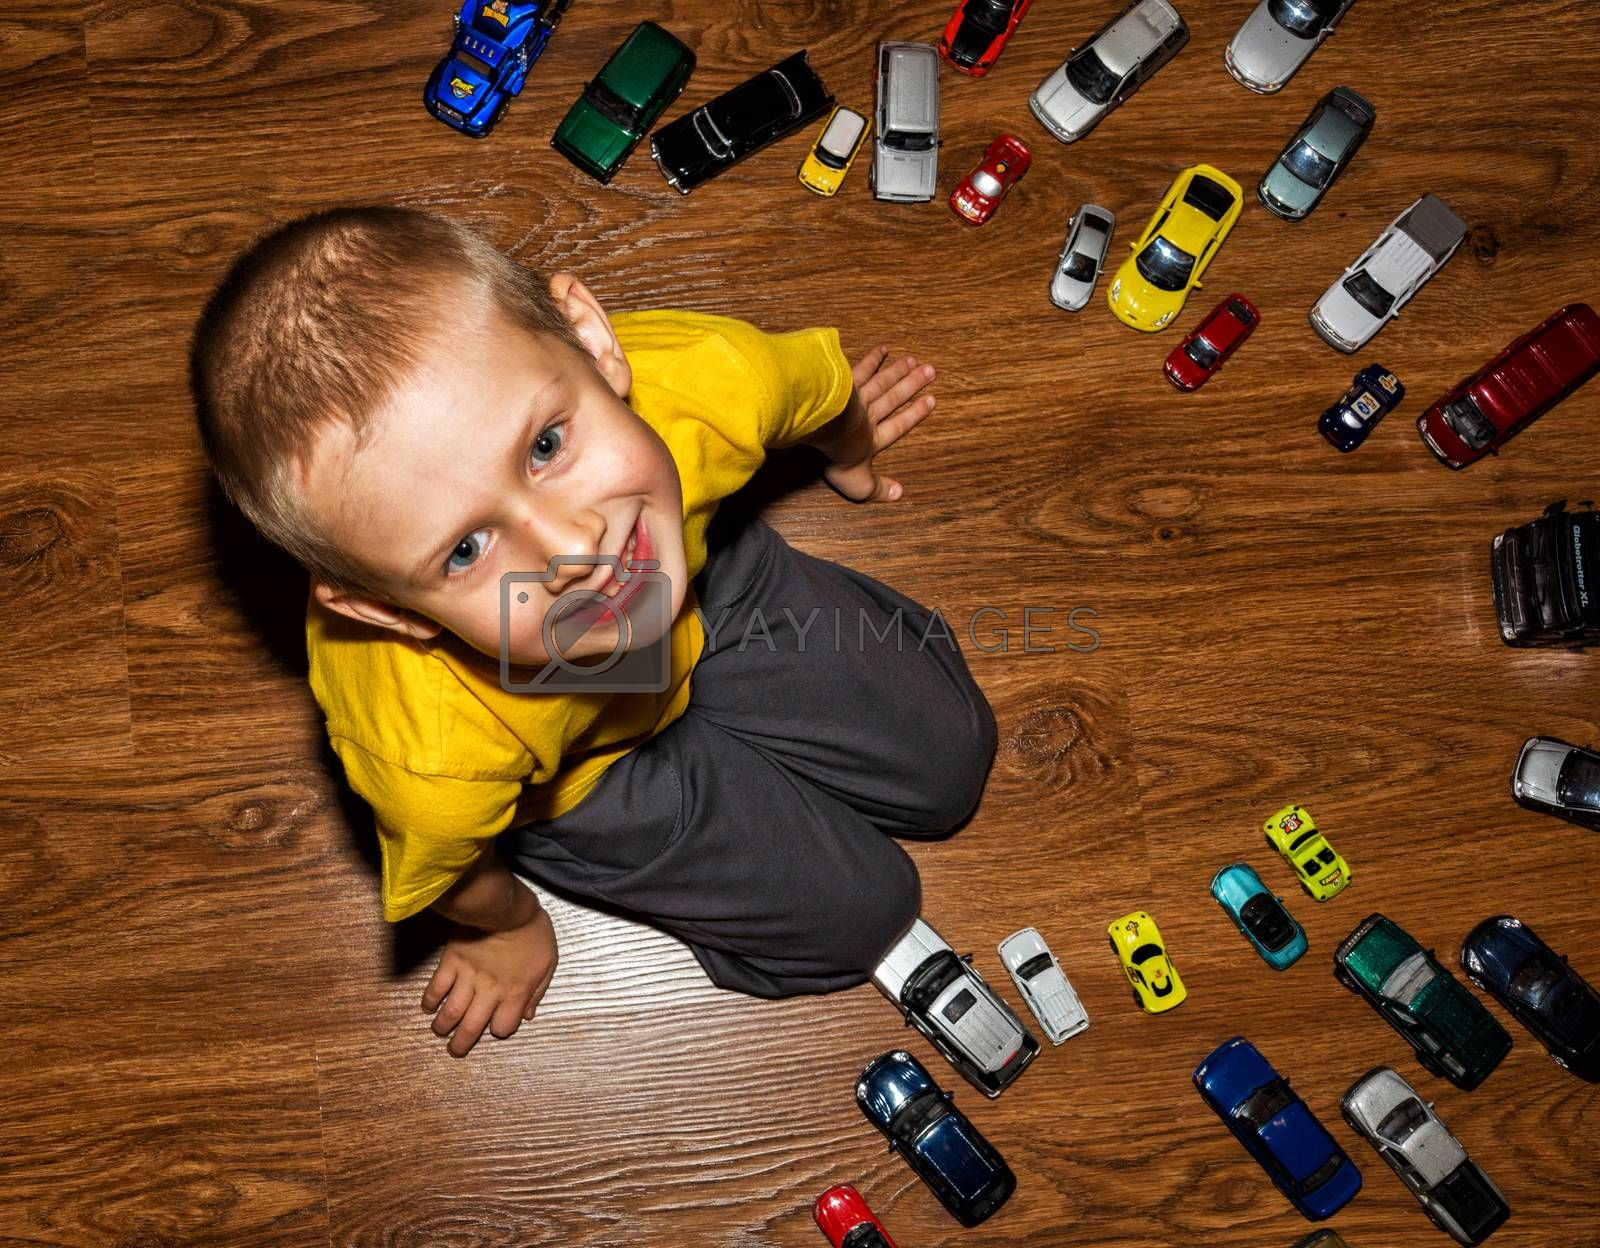 The photograph depicts a young boy with toy cars